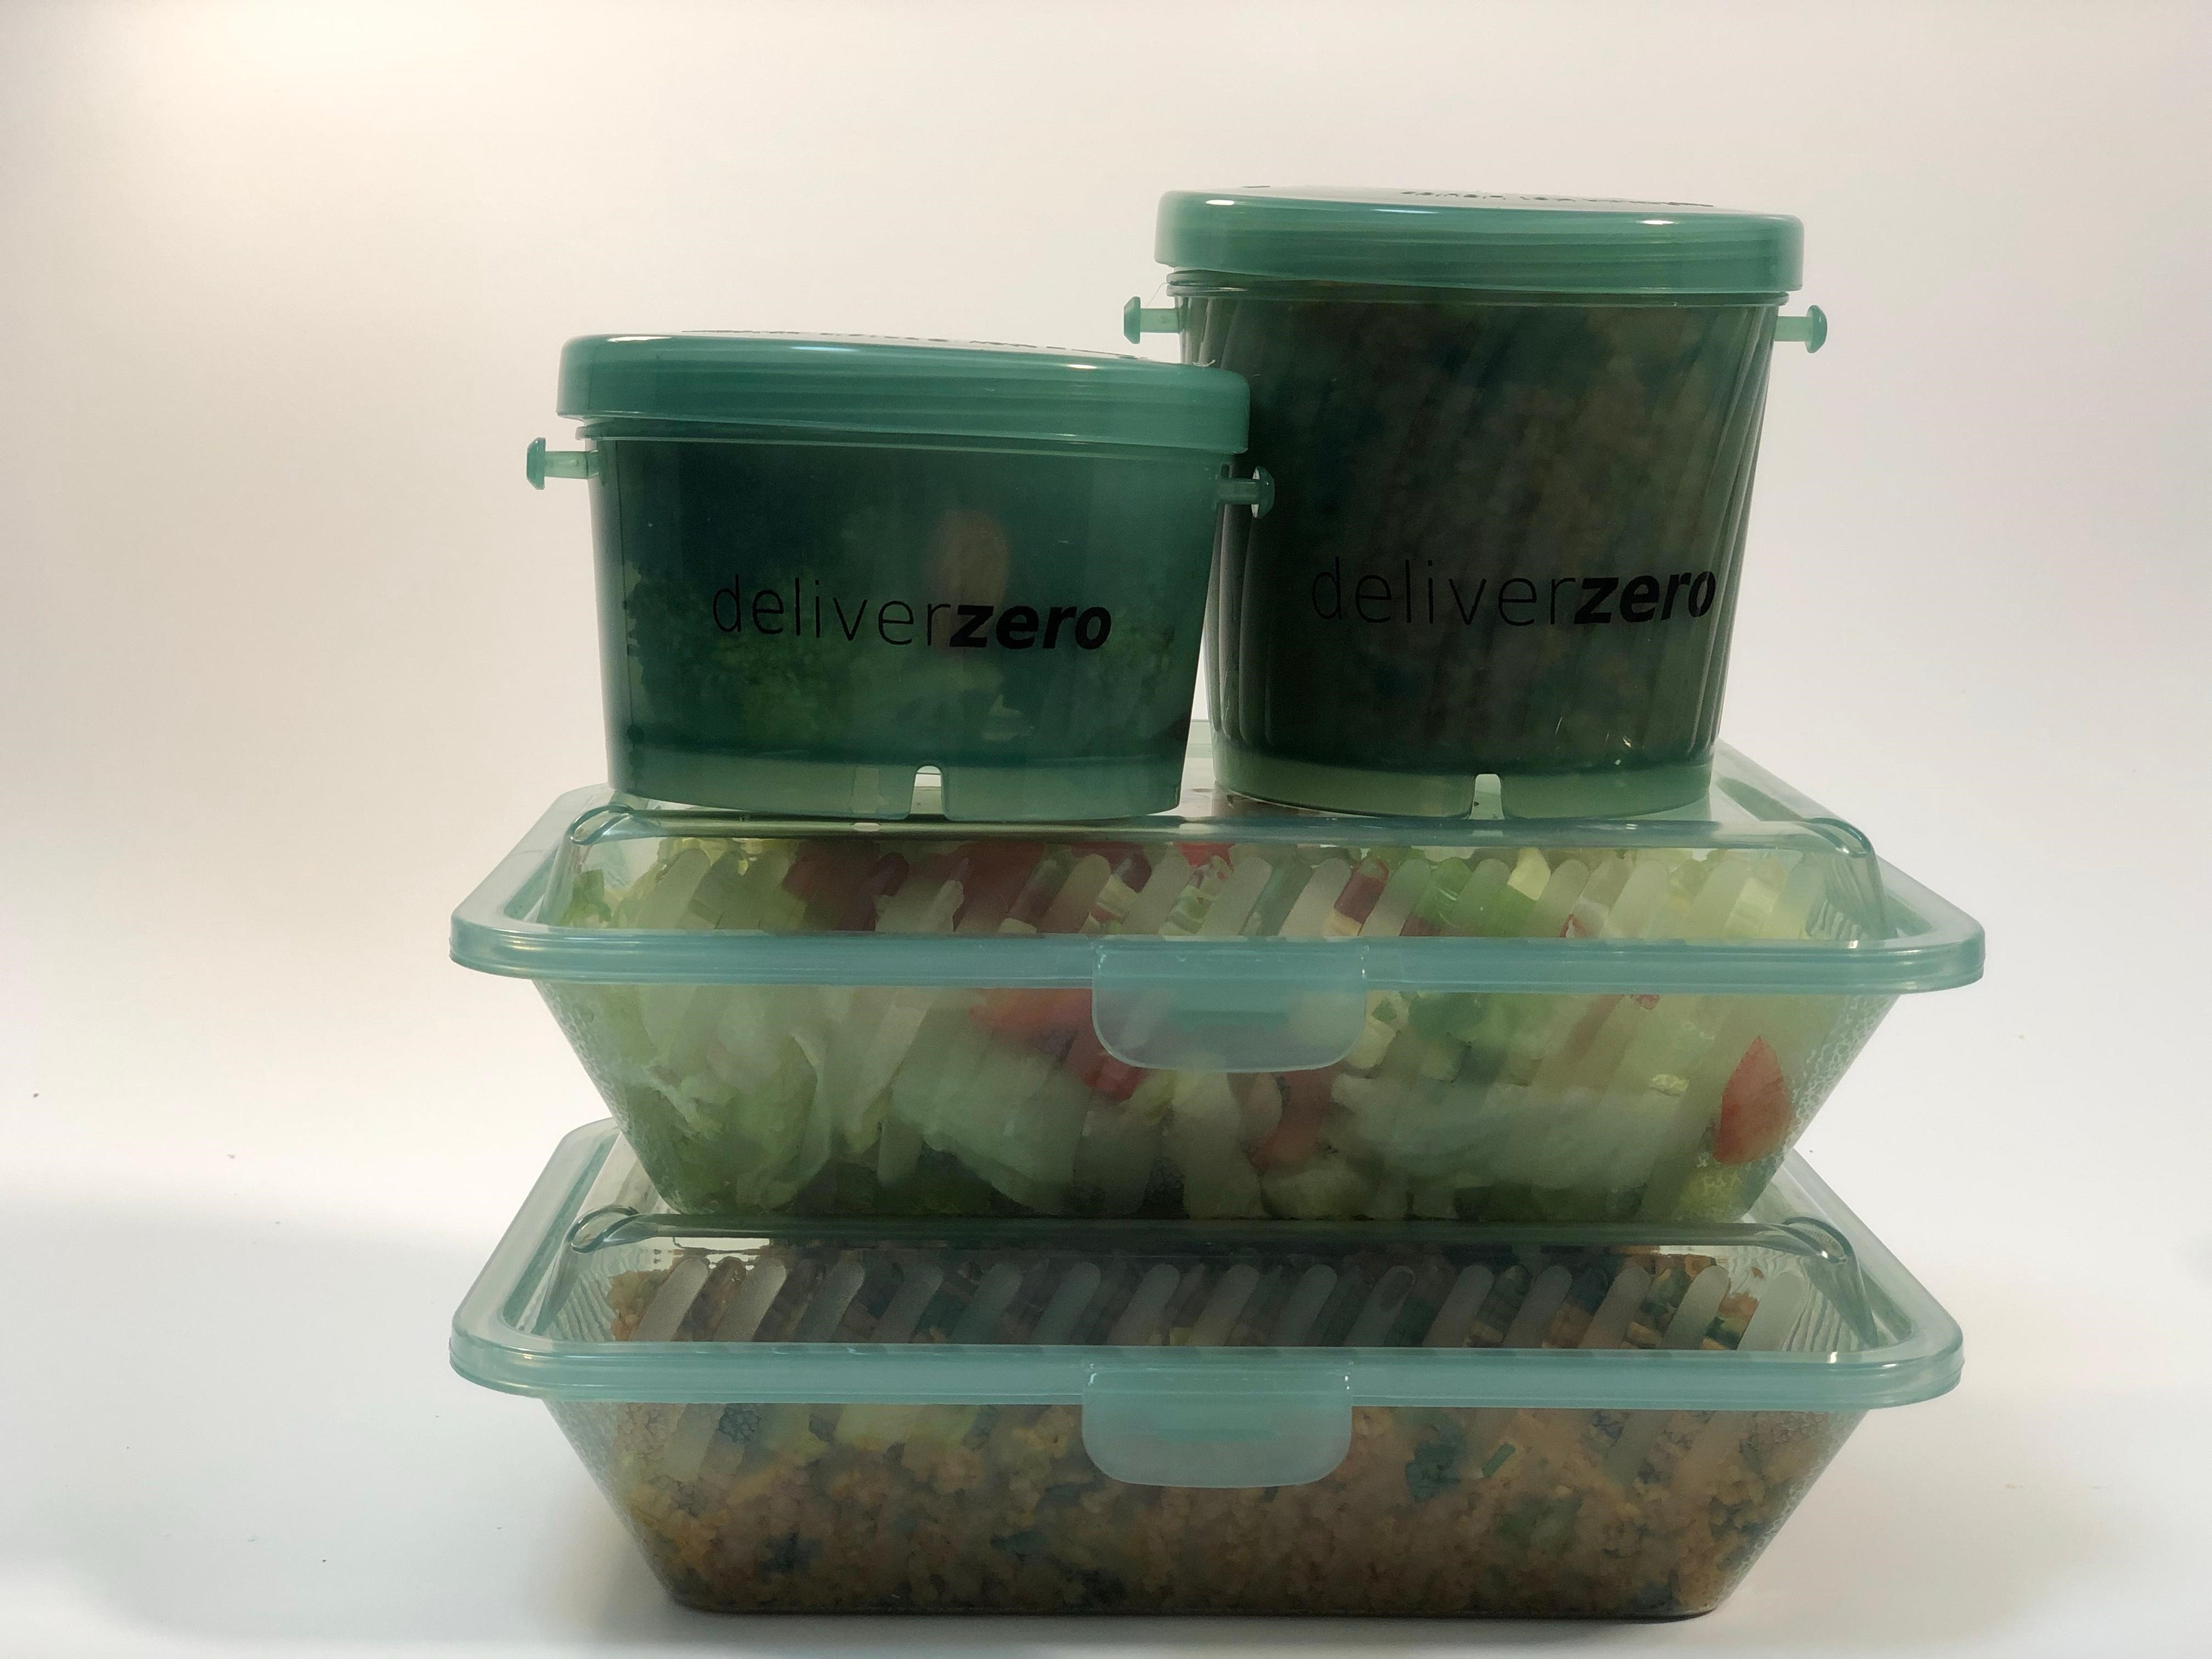 DeliverZero food containers